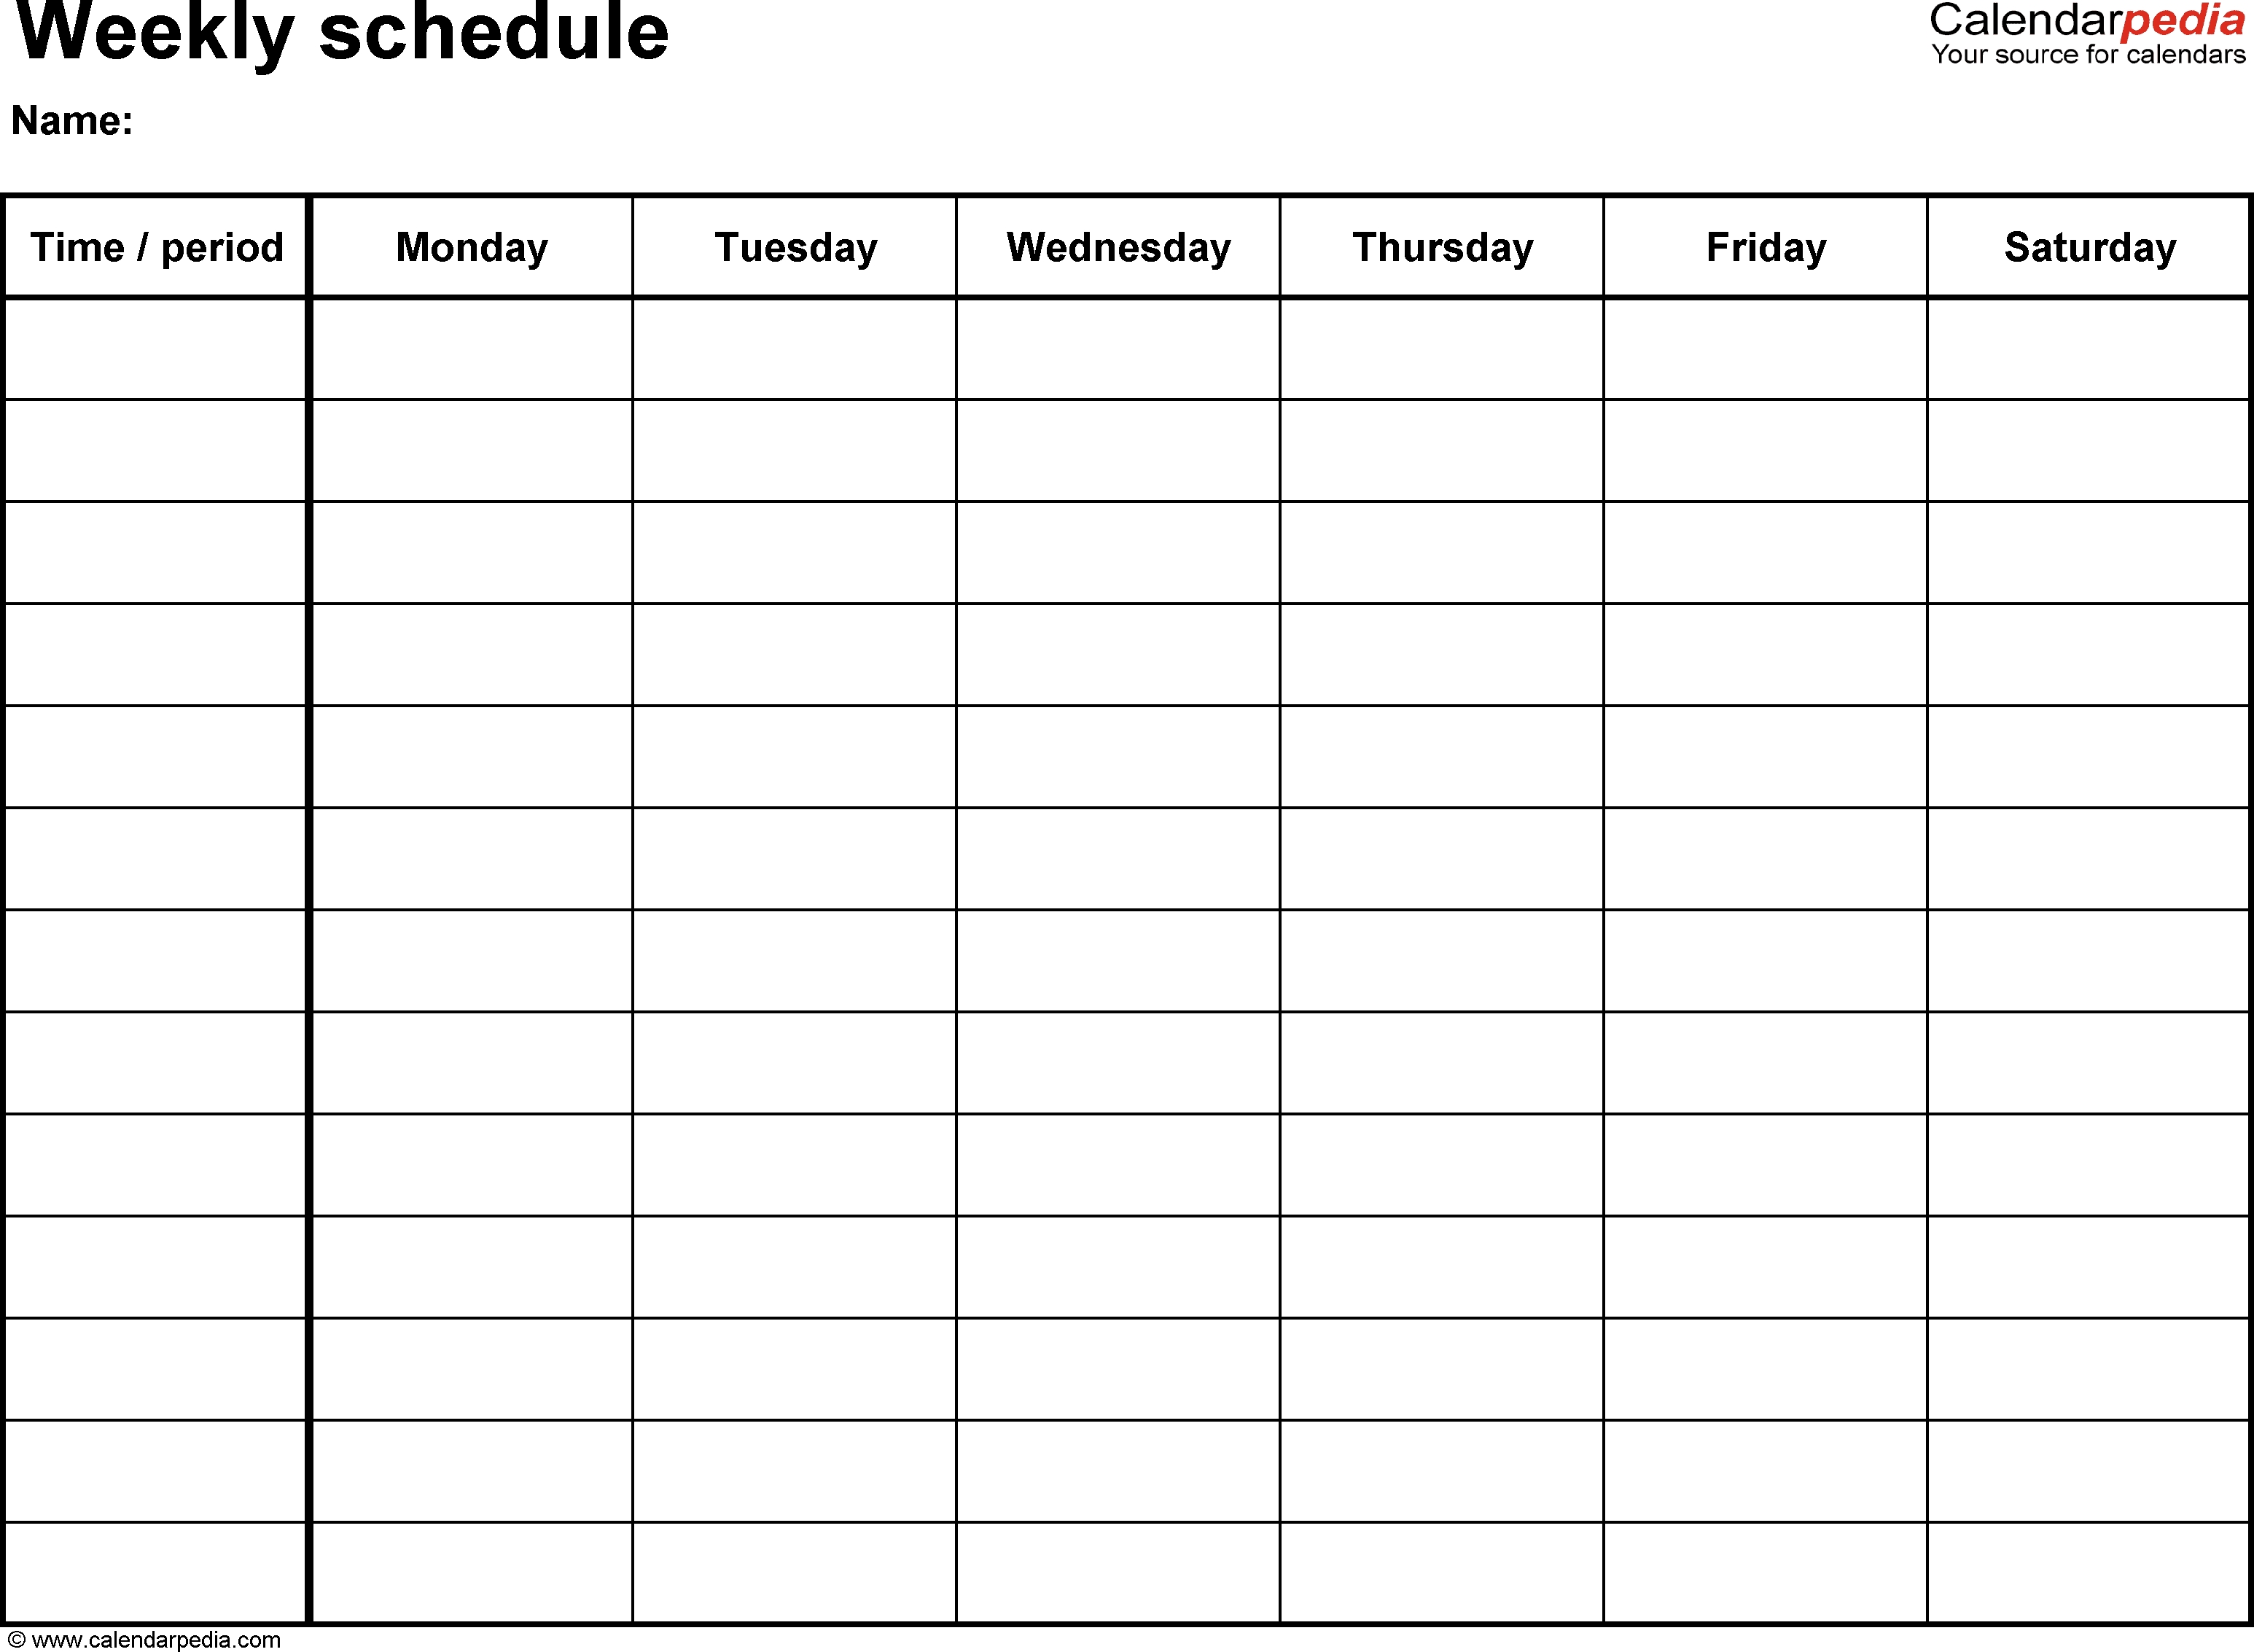 Free Weekly Schedule Templates For Word - 18 Templates  Monday Though Friday Timed Schedule